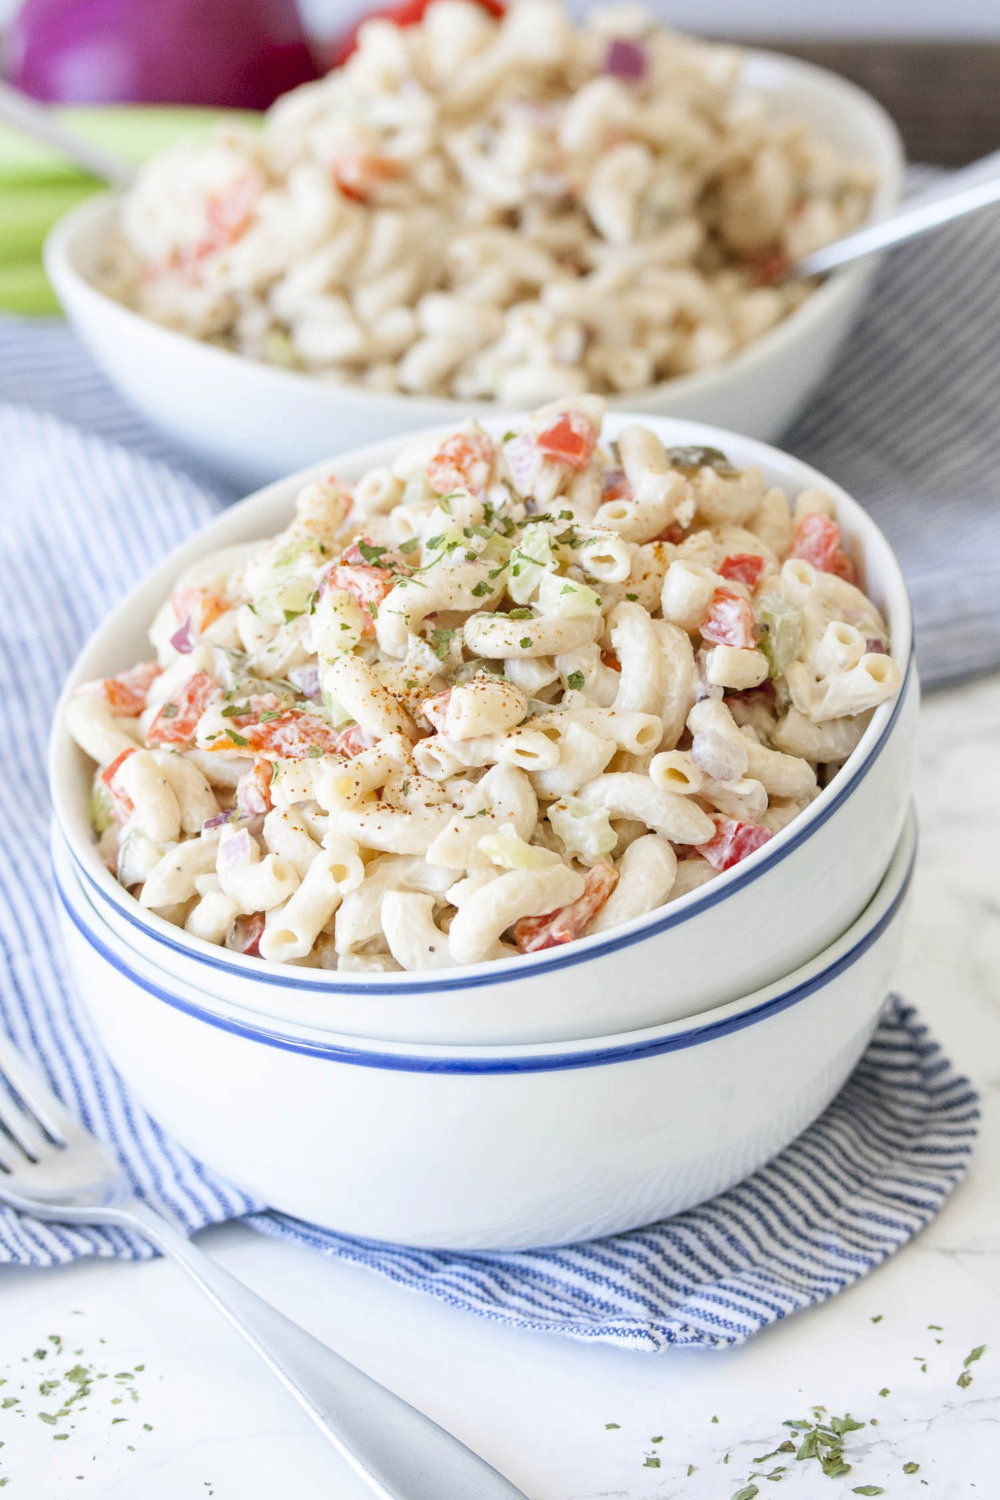 Healthy Vegan Macaroni Salad